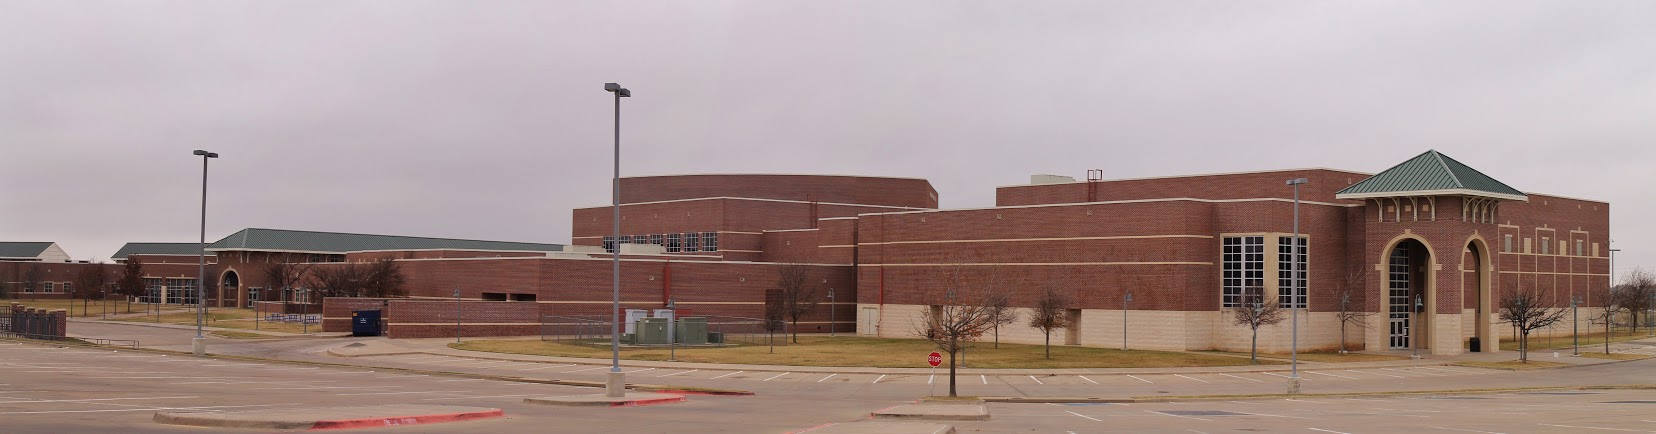 Weatherford High School